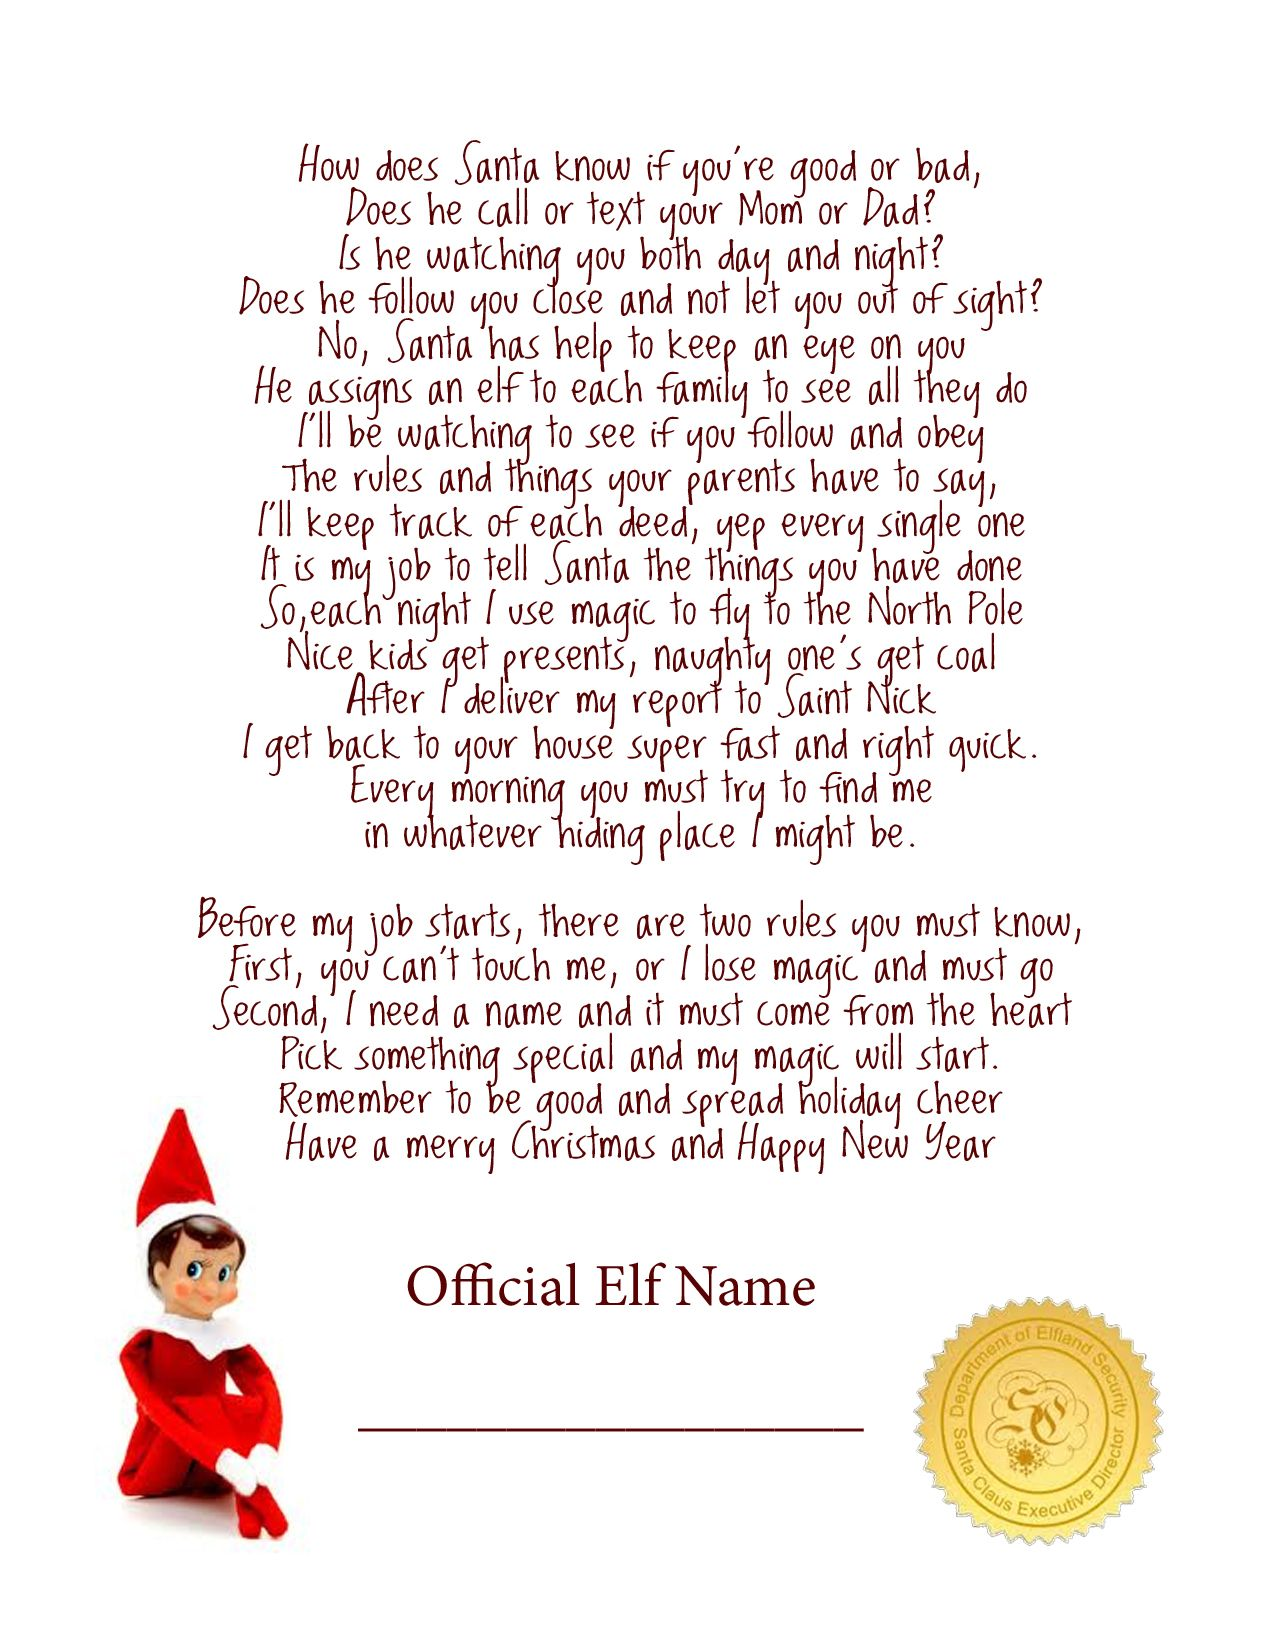 elf on a shelf letter free download at lillunacom she will understand the birth of christ first but this is fun